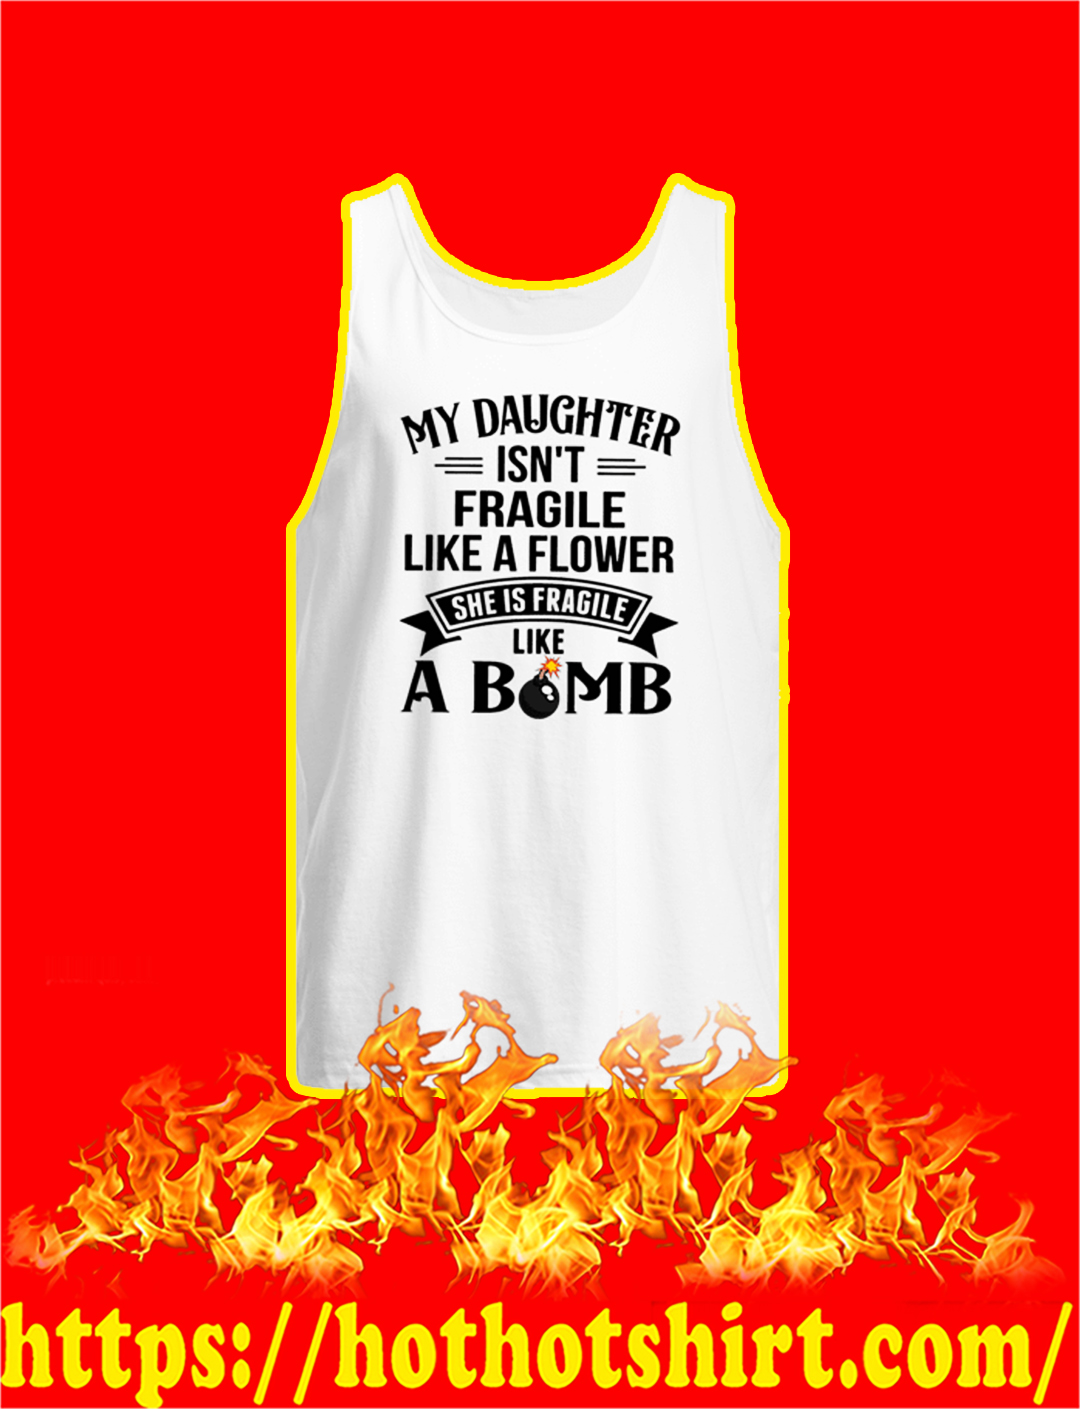 My Daughter Isn't Fragile Like A Flower She Is Fragile Like A Bomb tank top